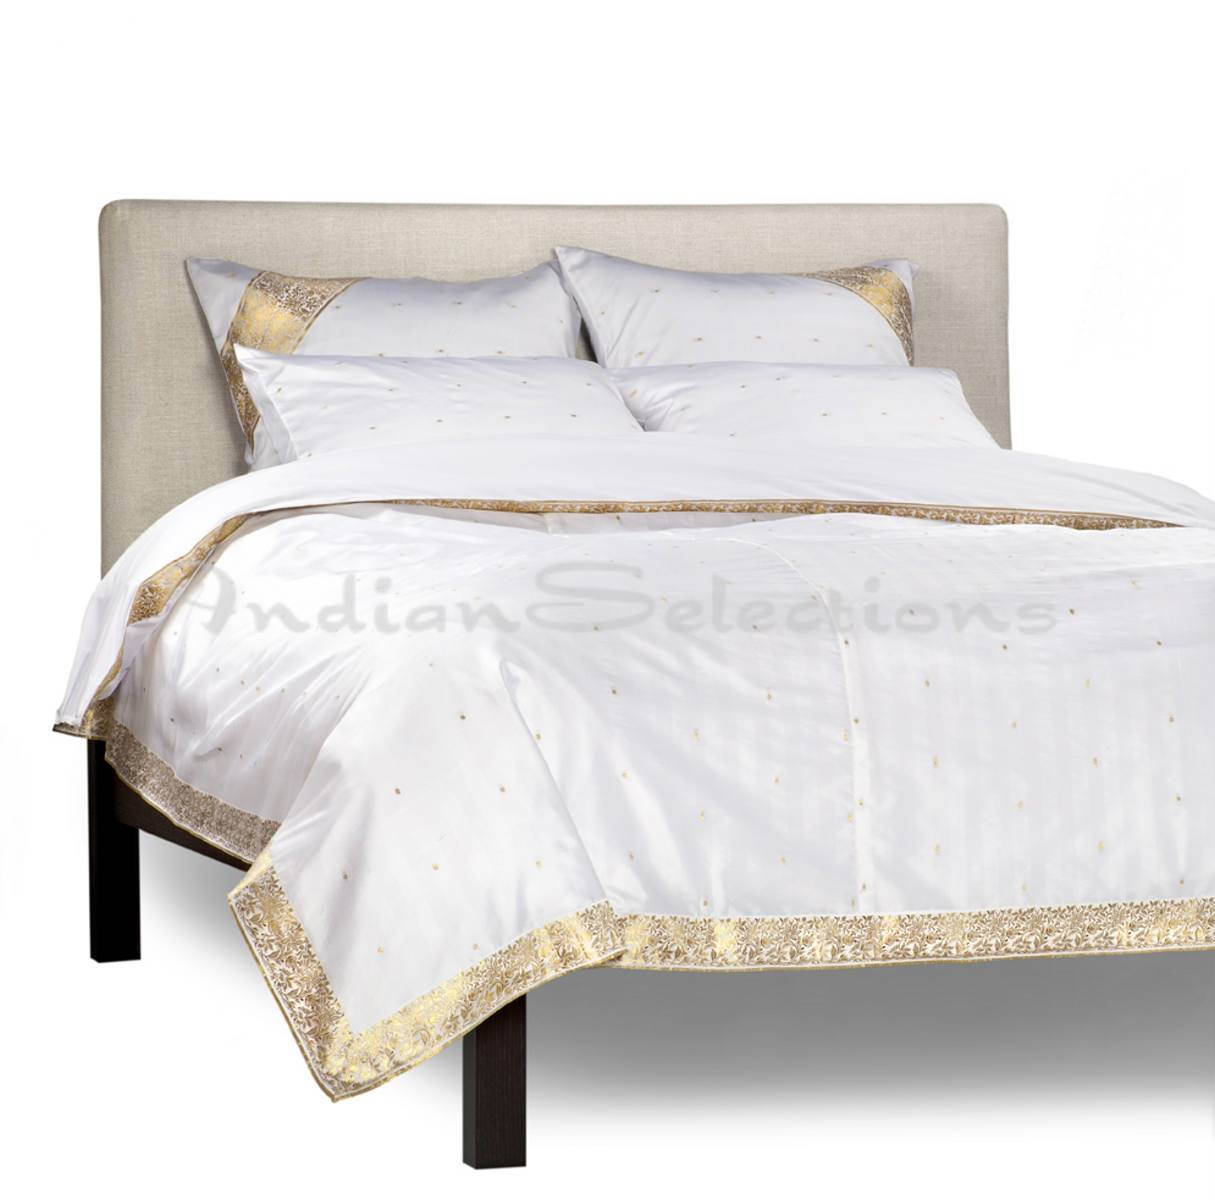 White Gold-5 Piece Sari Duvet Cover Set w Pillow CoversEuro Sham-CA King